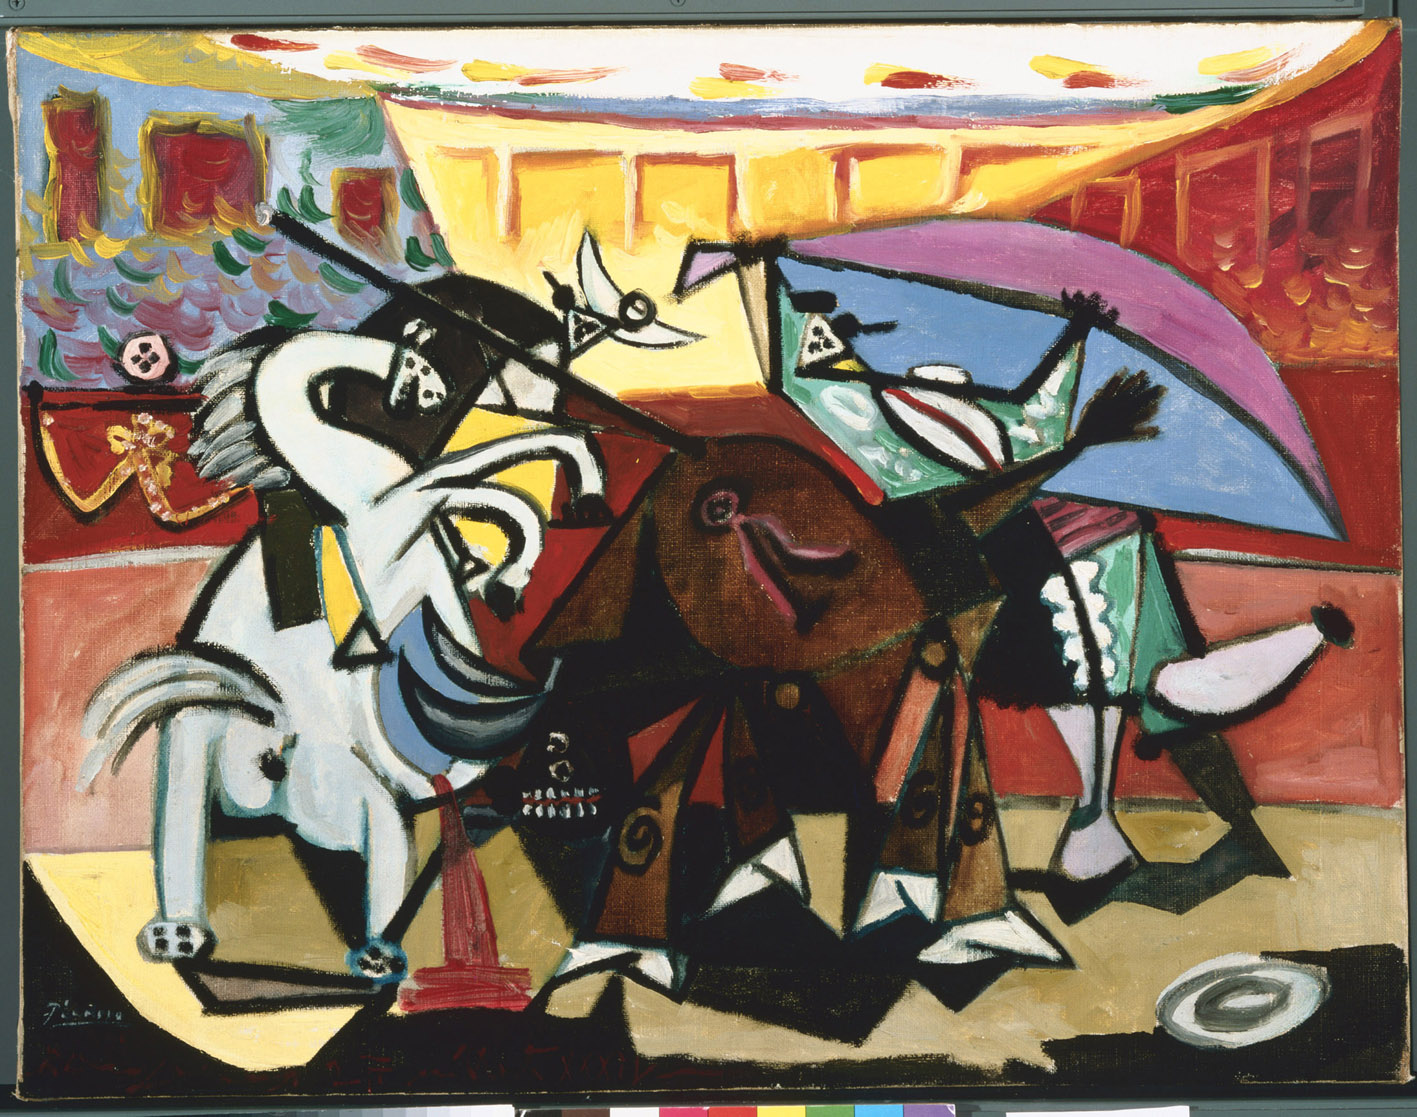 Tauromachia, 1934, por Pablo Picasso, óleo sobre lienzo, 49,8 x 65,4 cm, The Phillips Collection, Washington, D.C., adquirido en 1937.